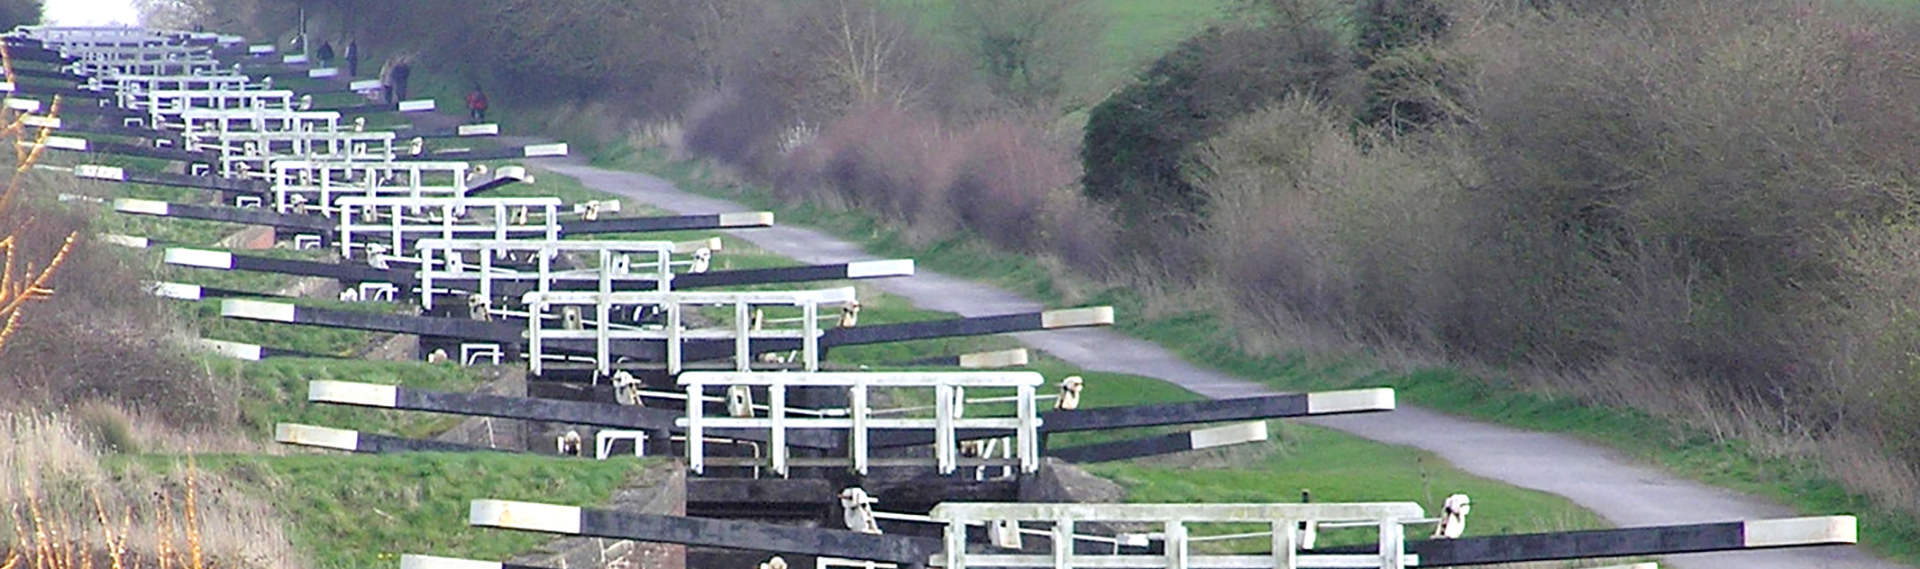 Devizes canal locks